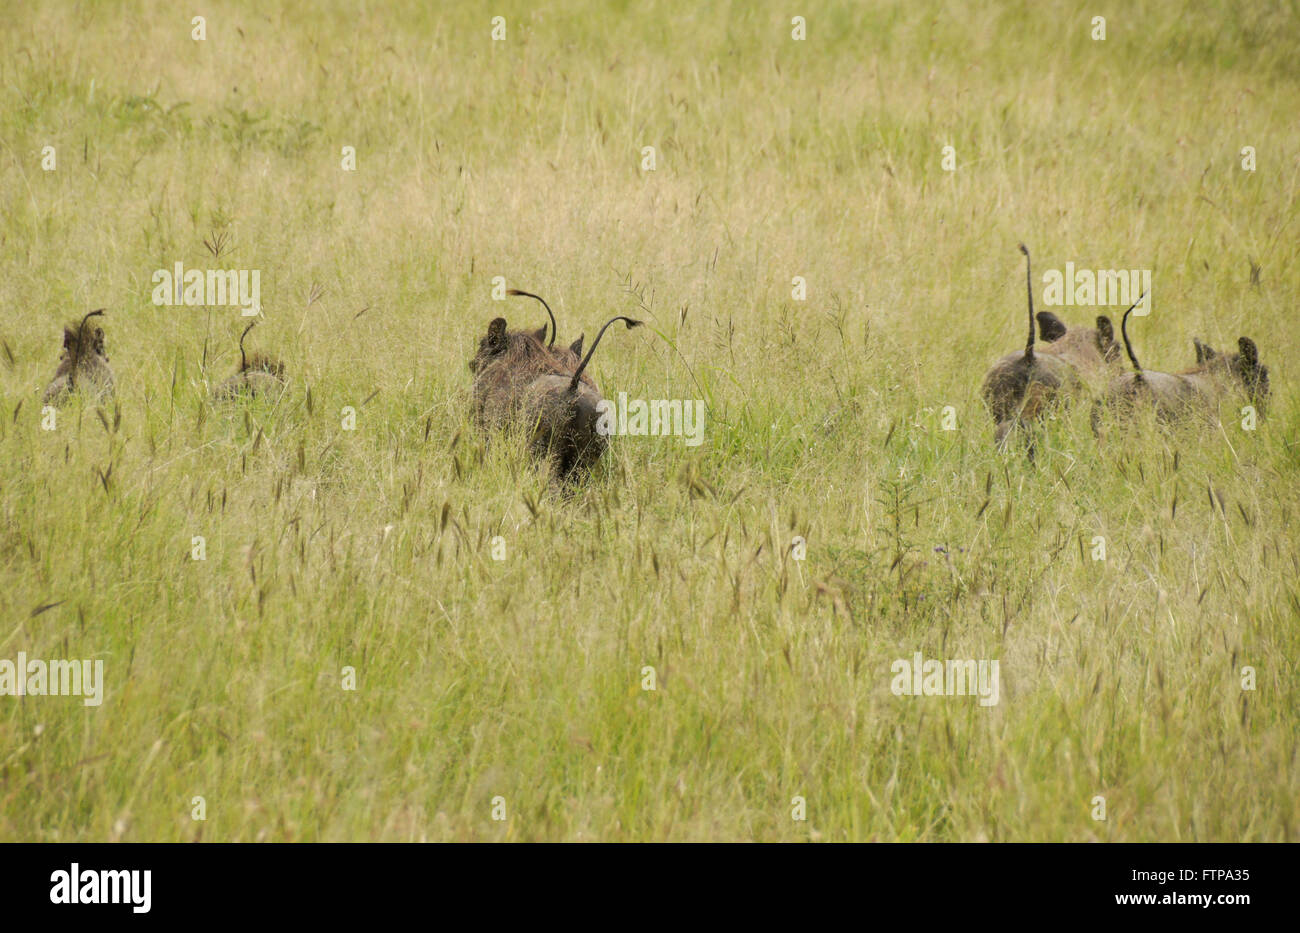 Family of warthogs running away in long grass, tails held high, Serengeti National Park, Tanzania - Stock Image